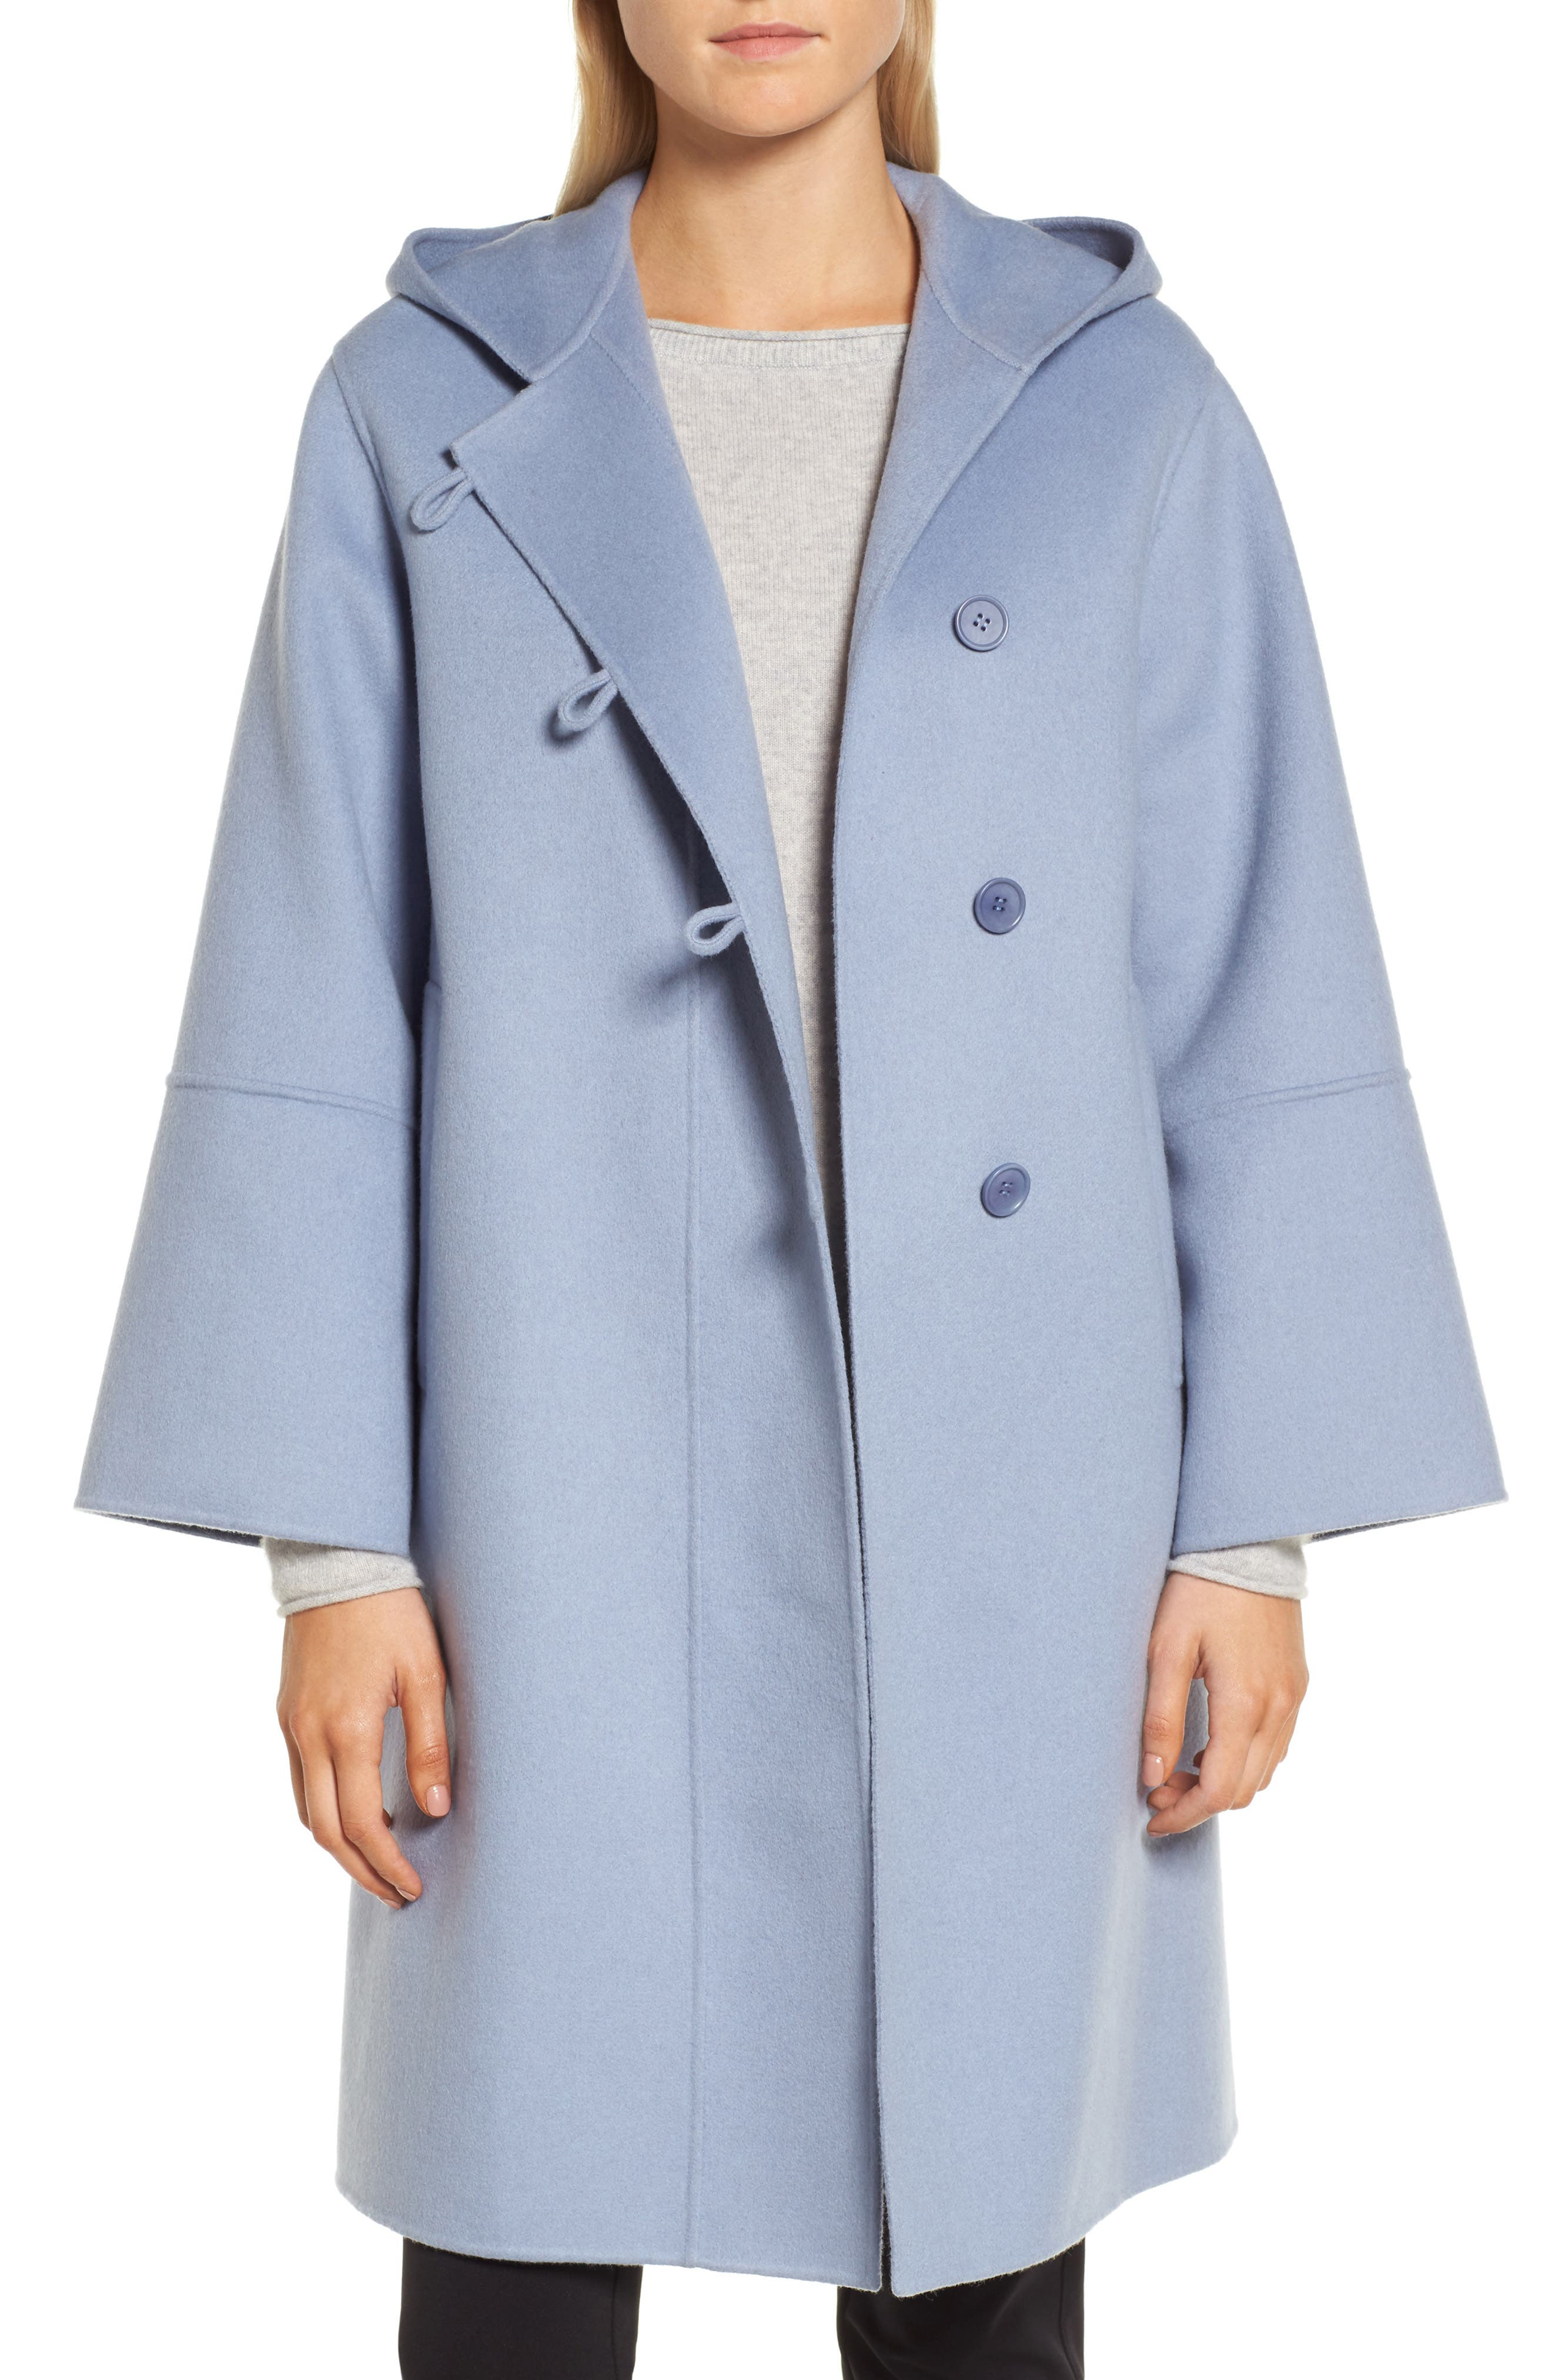 Main Image - Nordstrom Signature Hooded Wool & Cashmere Coat